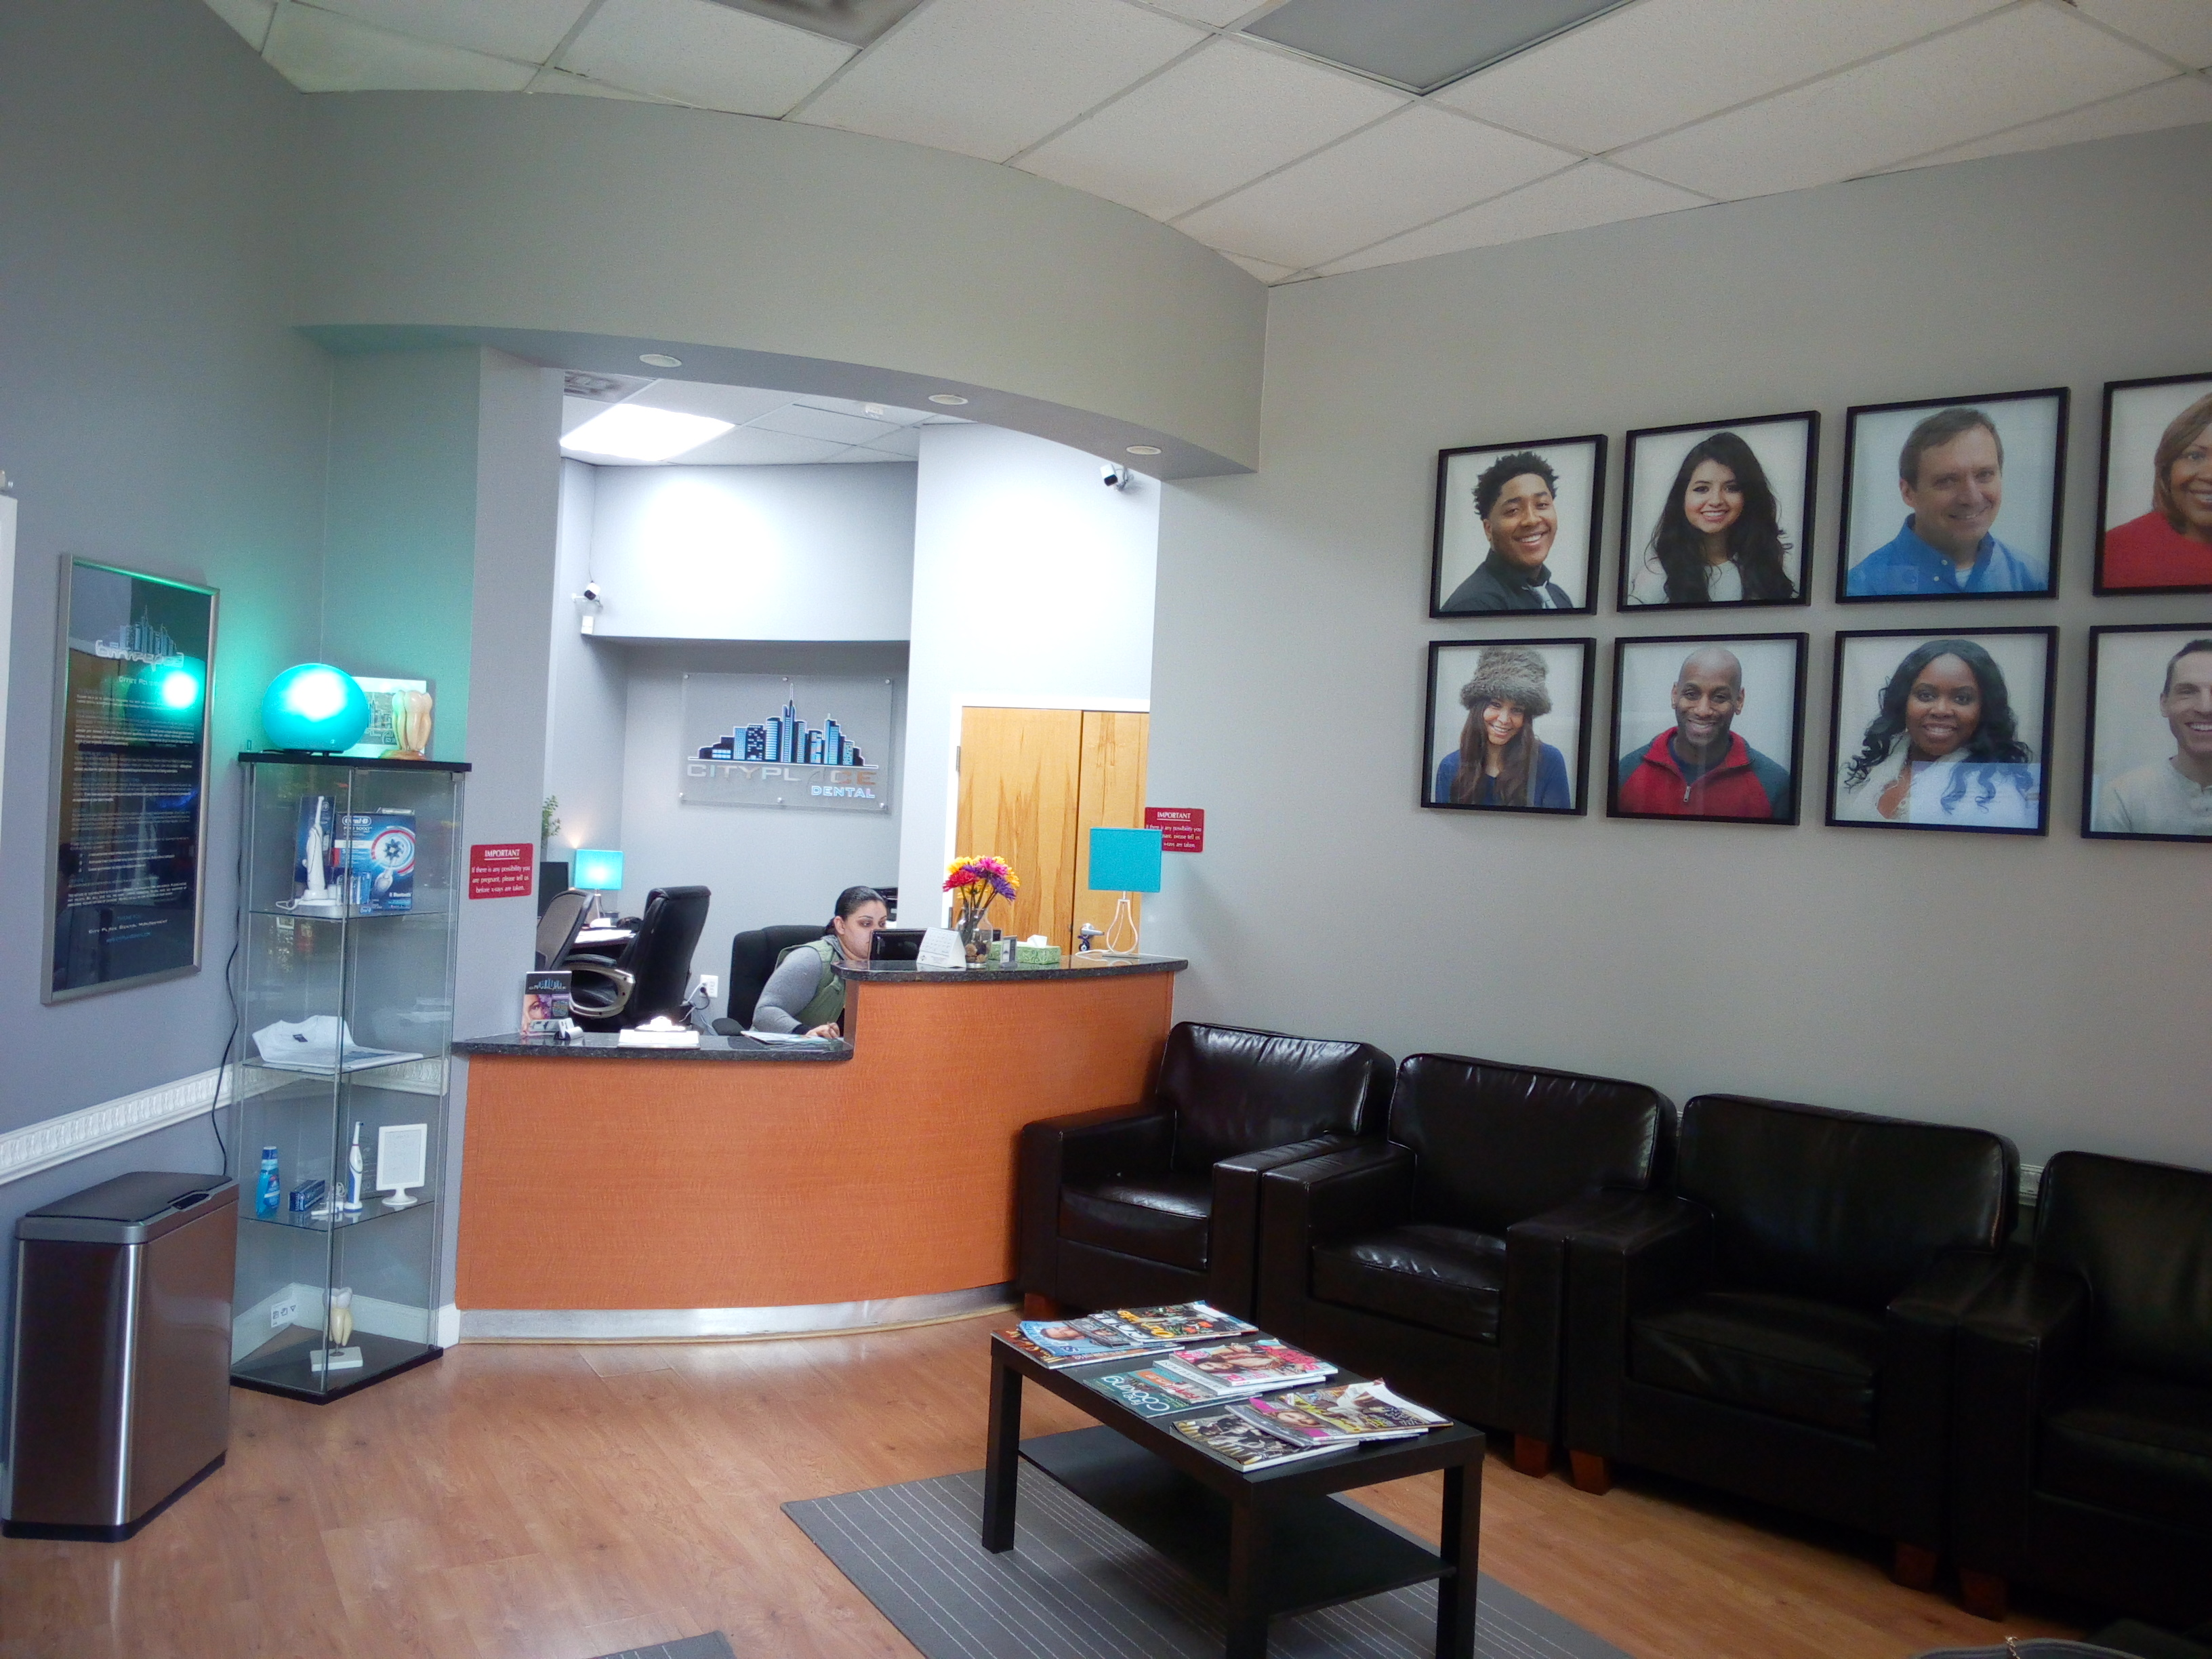 City Place Dental Reception Room